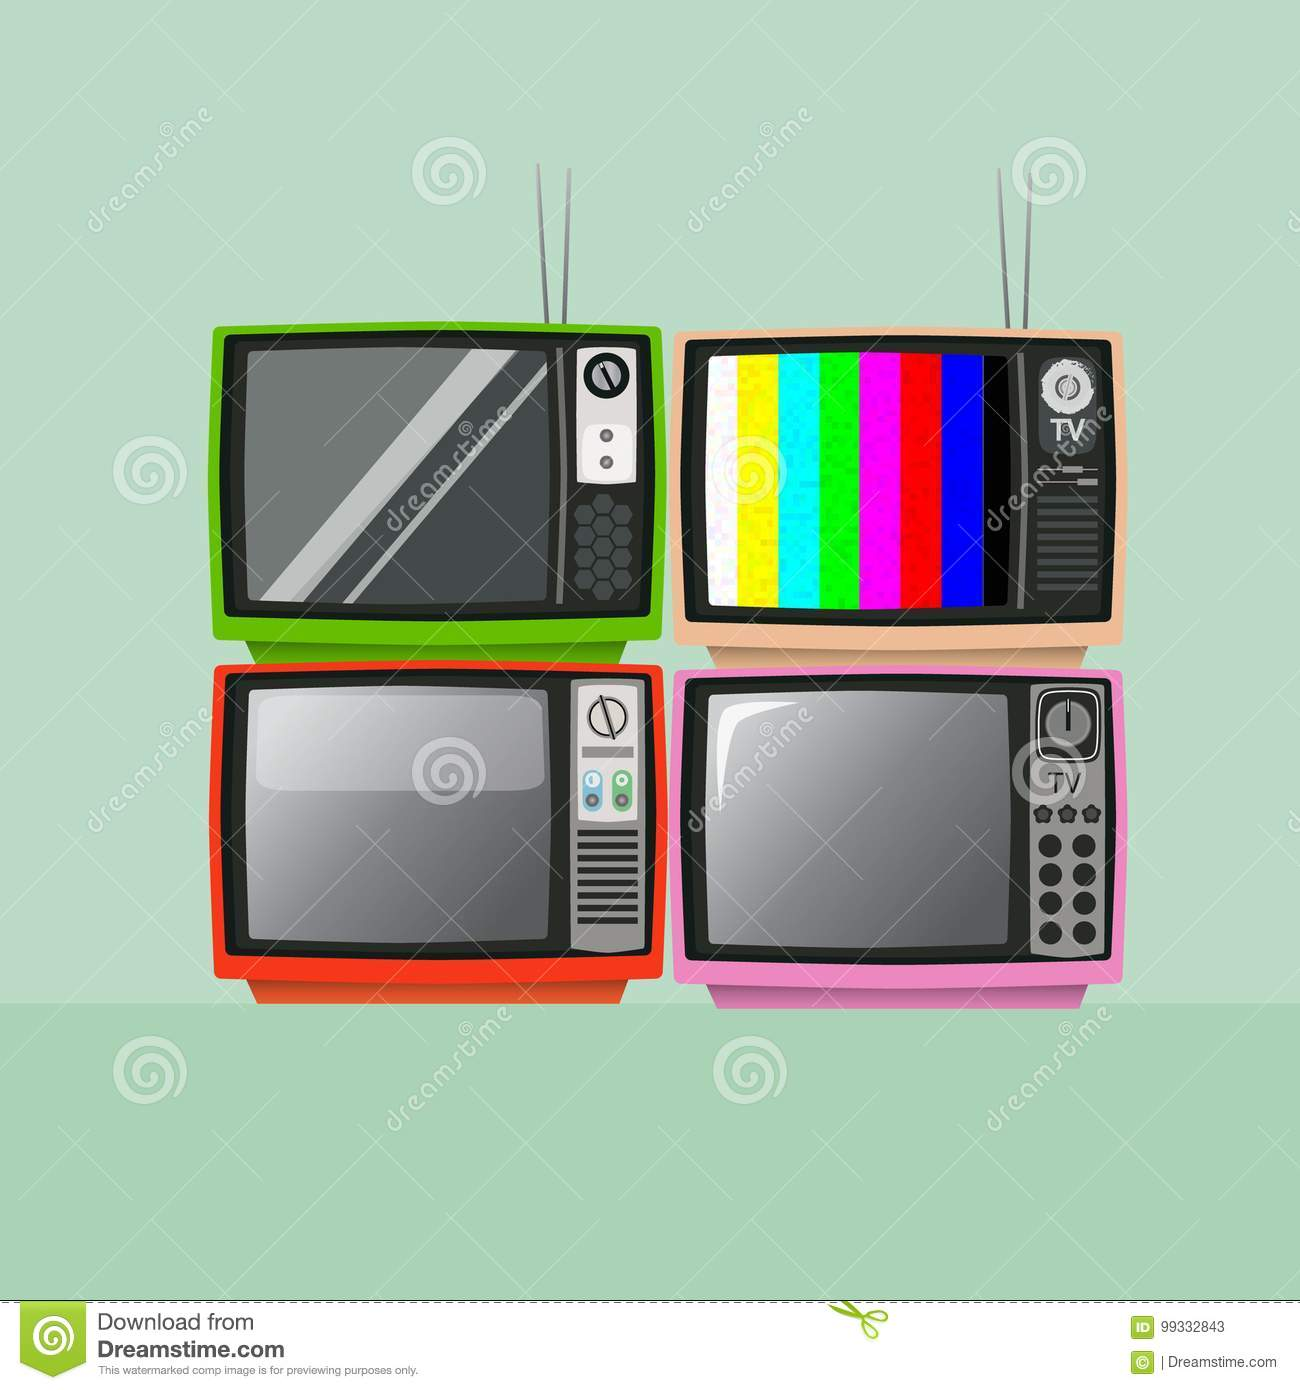 Old Vintage TV. Retro Television. Stock Vector ...